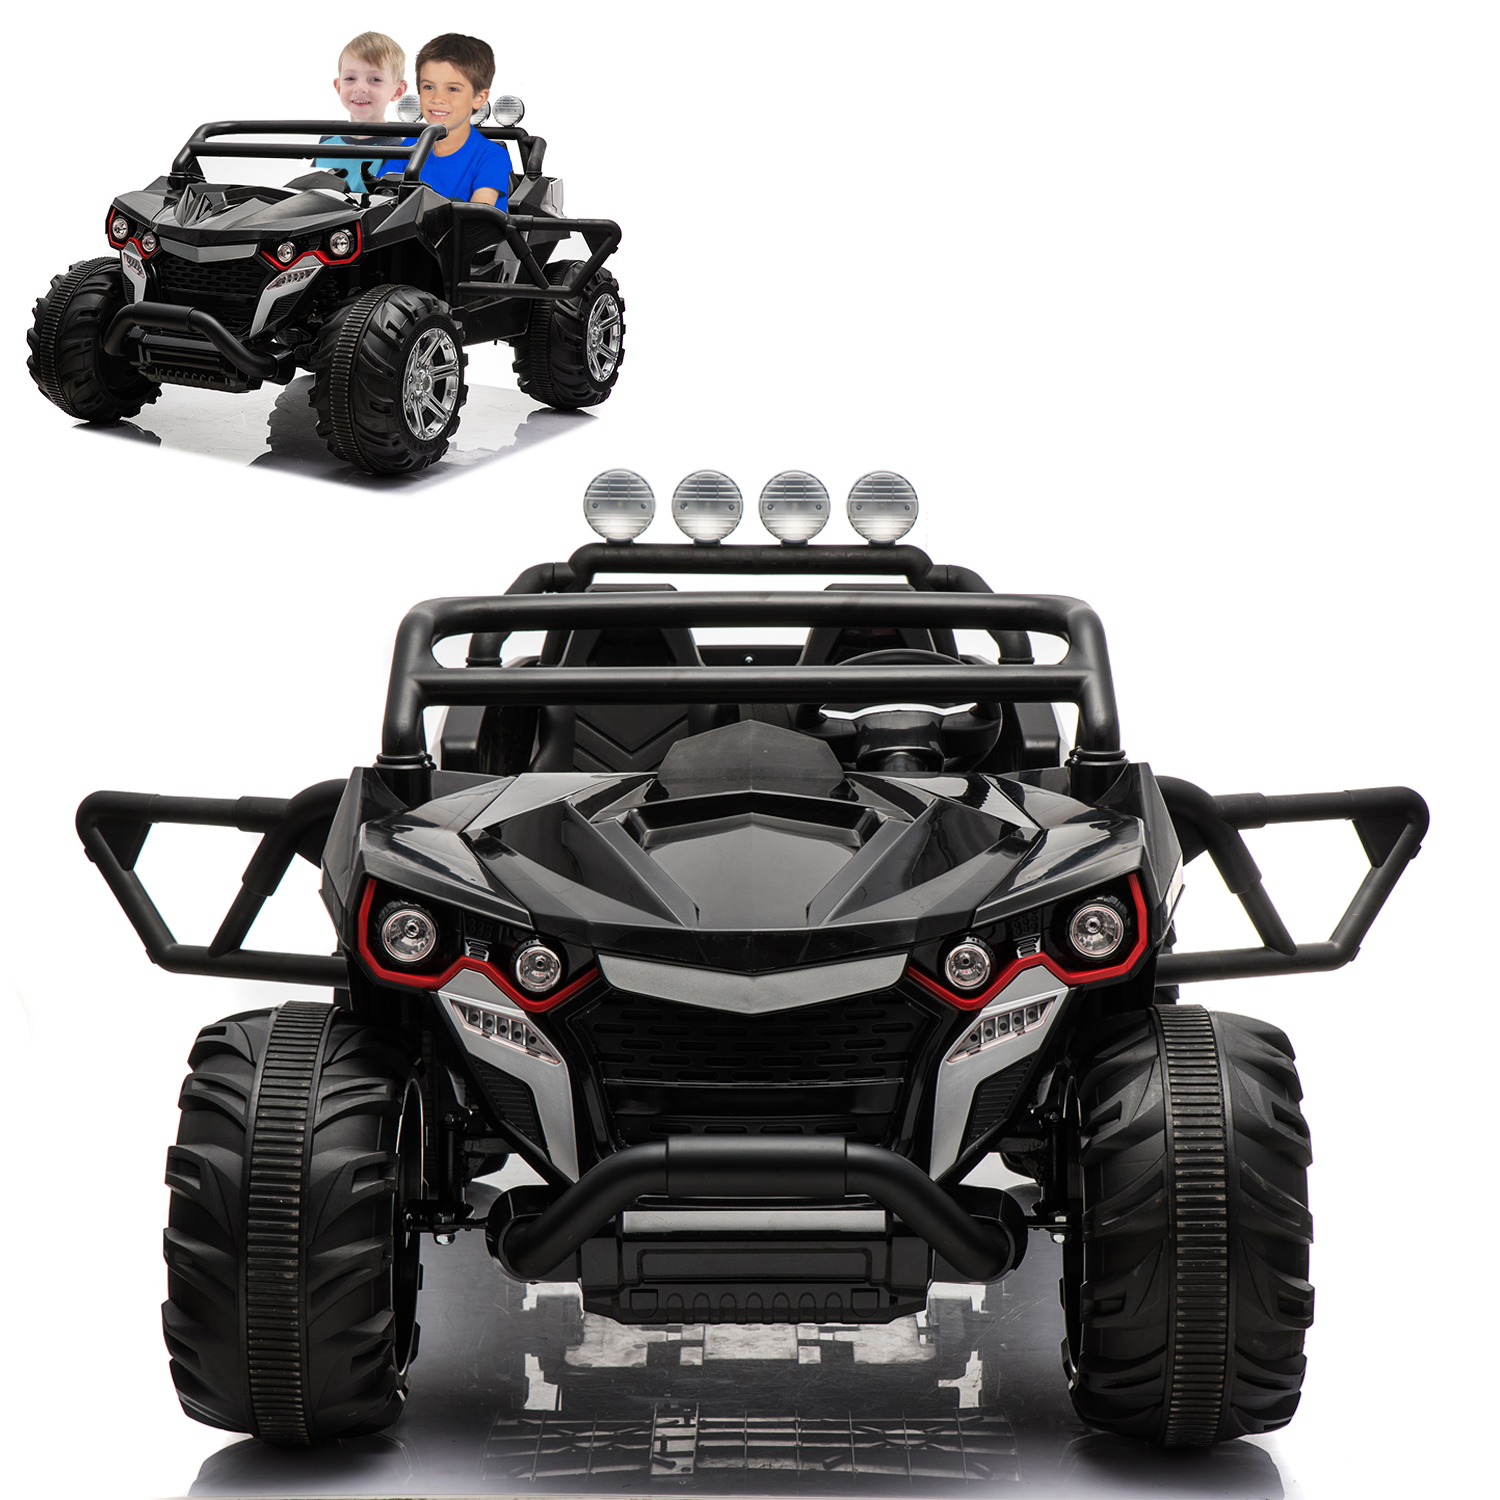 ATV Truck Electric Ride On Car 2 Seats With Remote Control For Kids | 12V Power Battery Kid Car To Drive With 4 Motors, 2.4G Radio Parental Control, Openable Door, EVA Wheel - Black